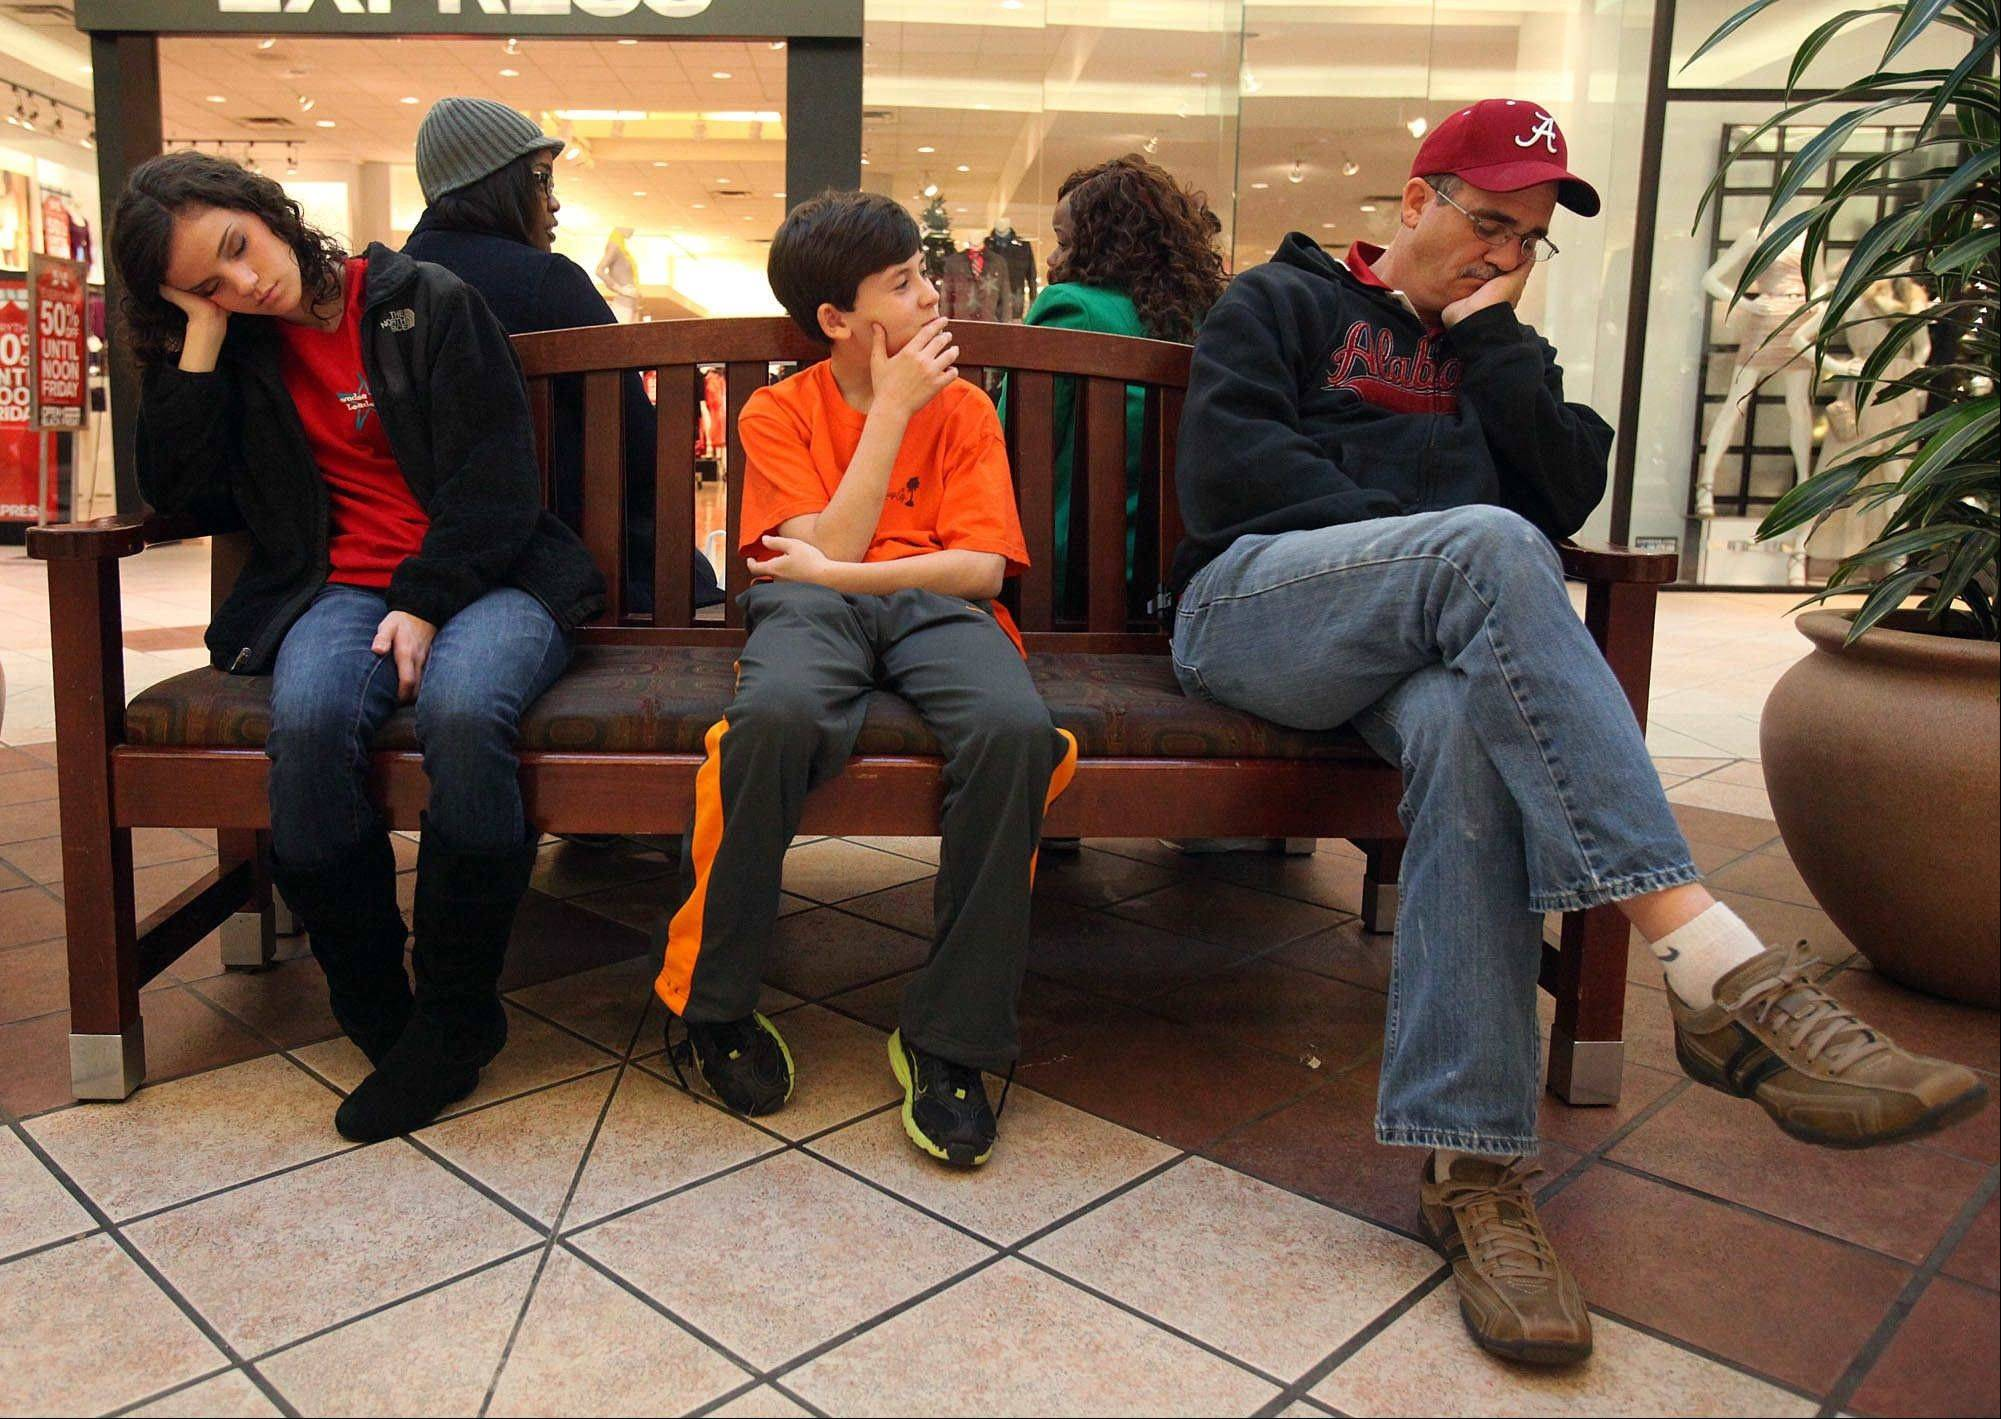 Black Friday shoppers Victoria McDaniel, 16, left, and Ronnie McDaniel, right, sleep as Connor Church, 12, center, gets a laugh at the University Mall in Tuscaloosa, Ala.